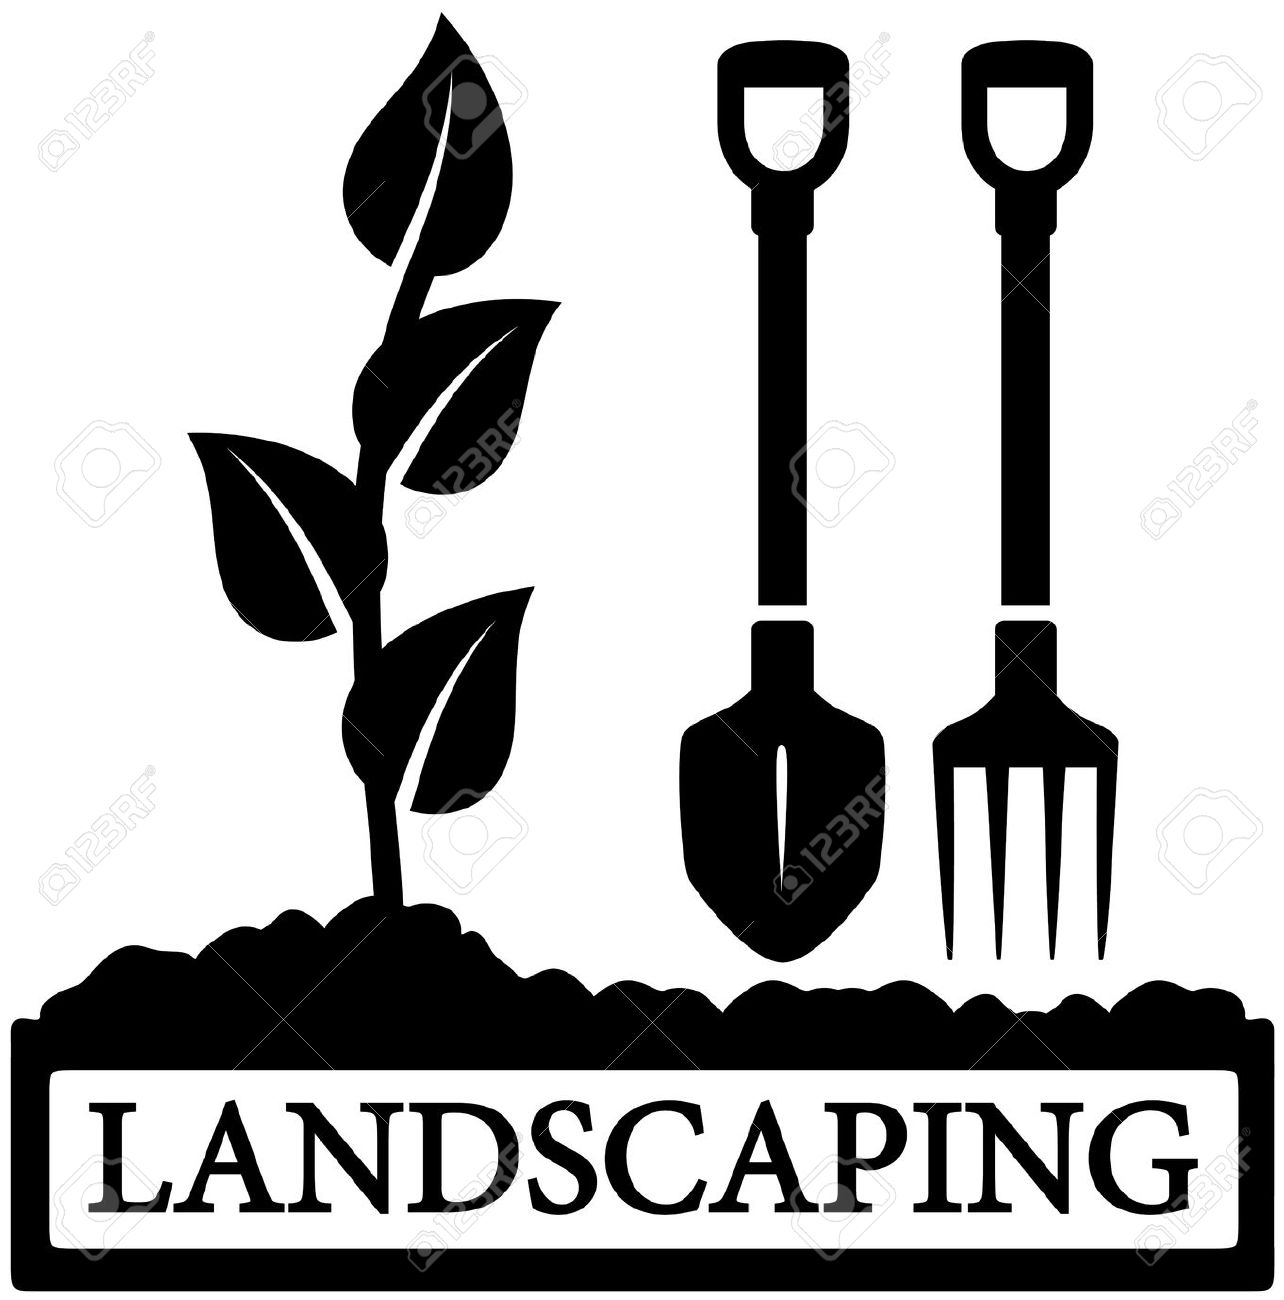 4,259 Landscaping Stock Vector Illustration And Royalty Free.